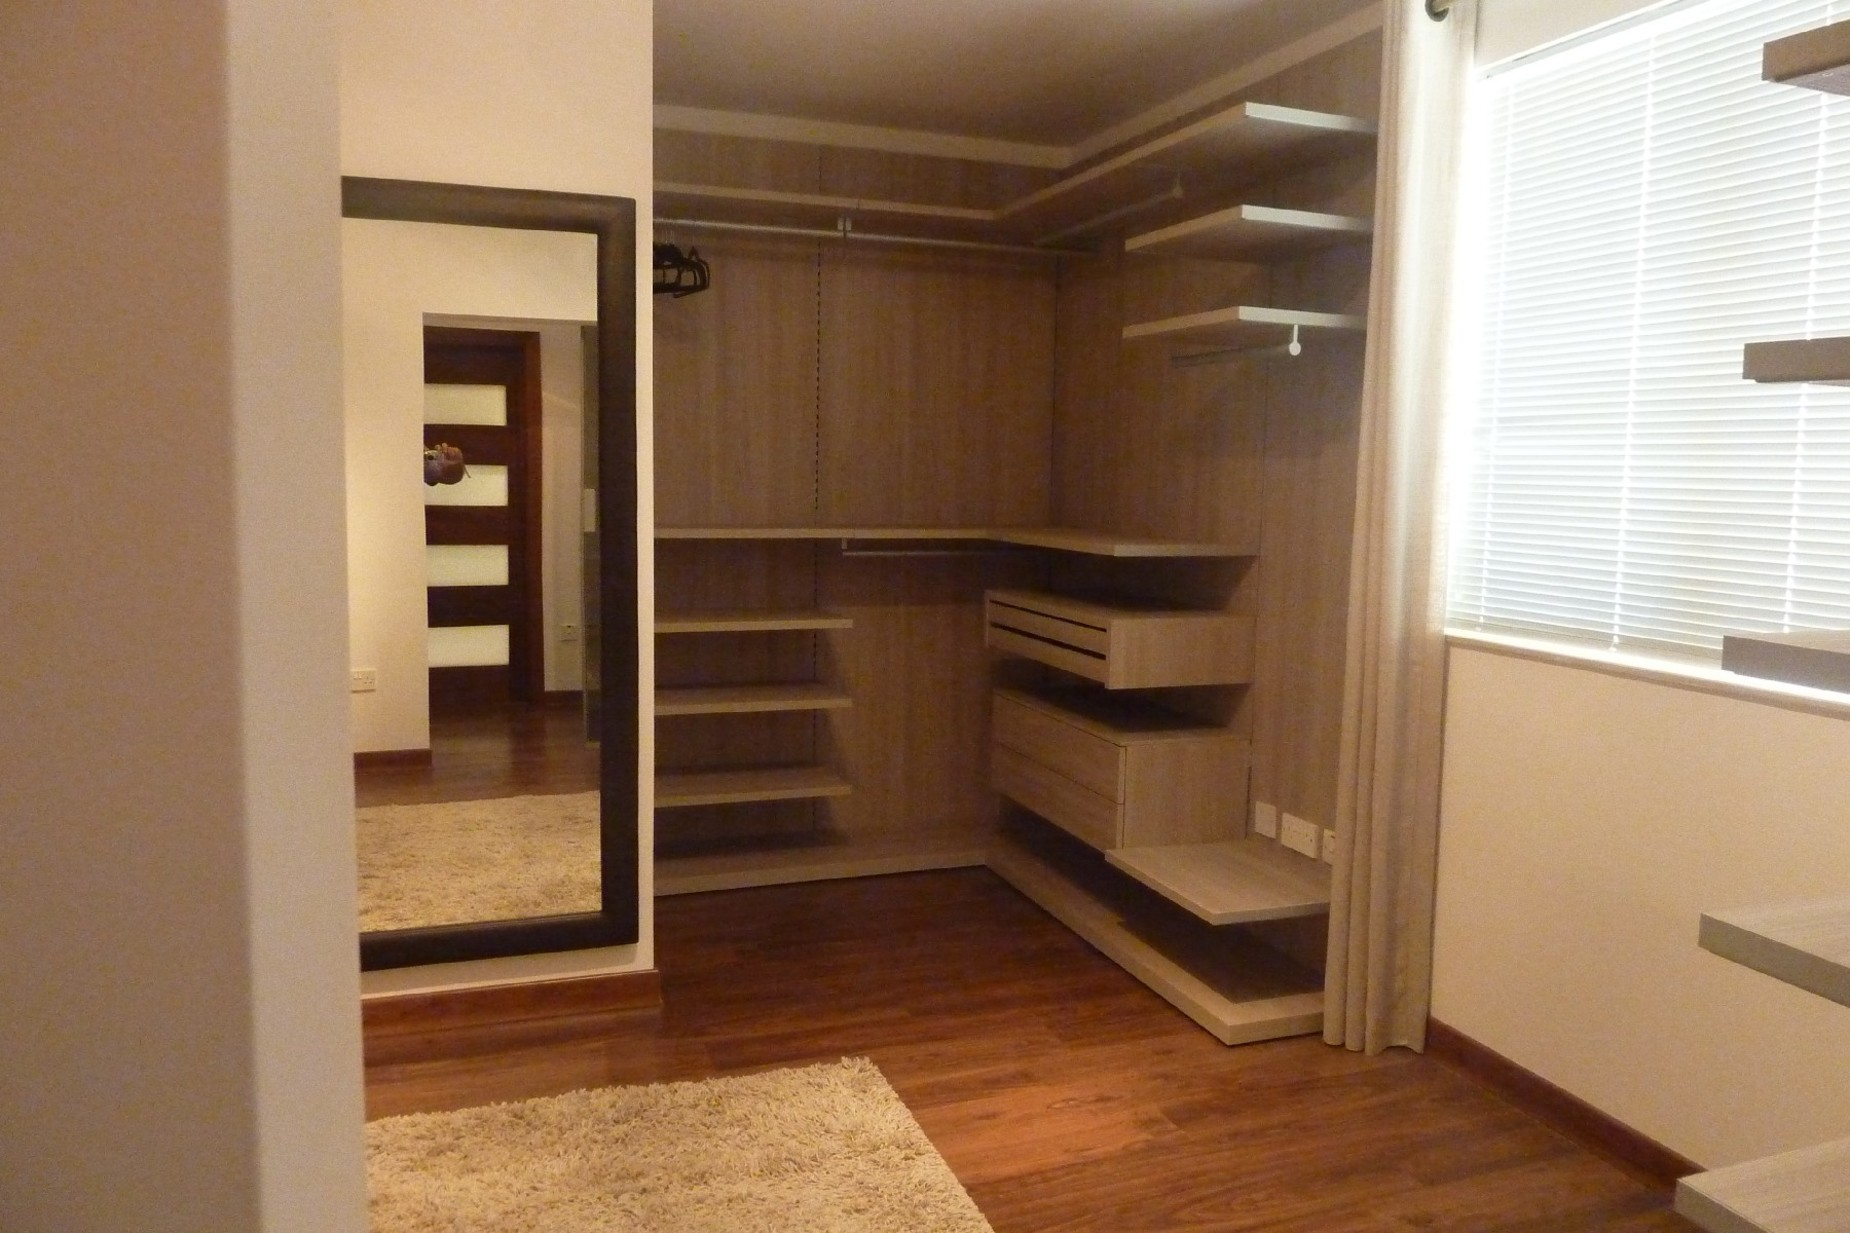 3 bed Apartment For Rent in Madliena, Madliena - thumb 9